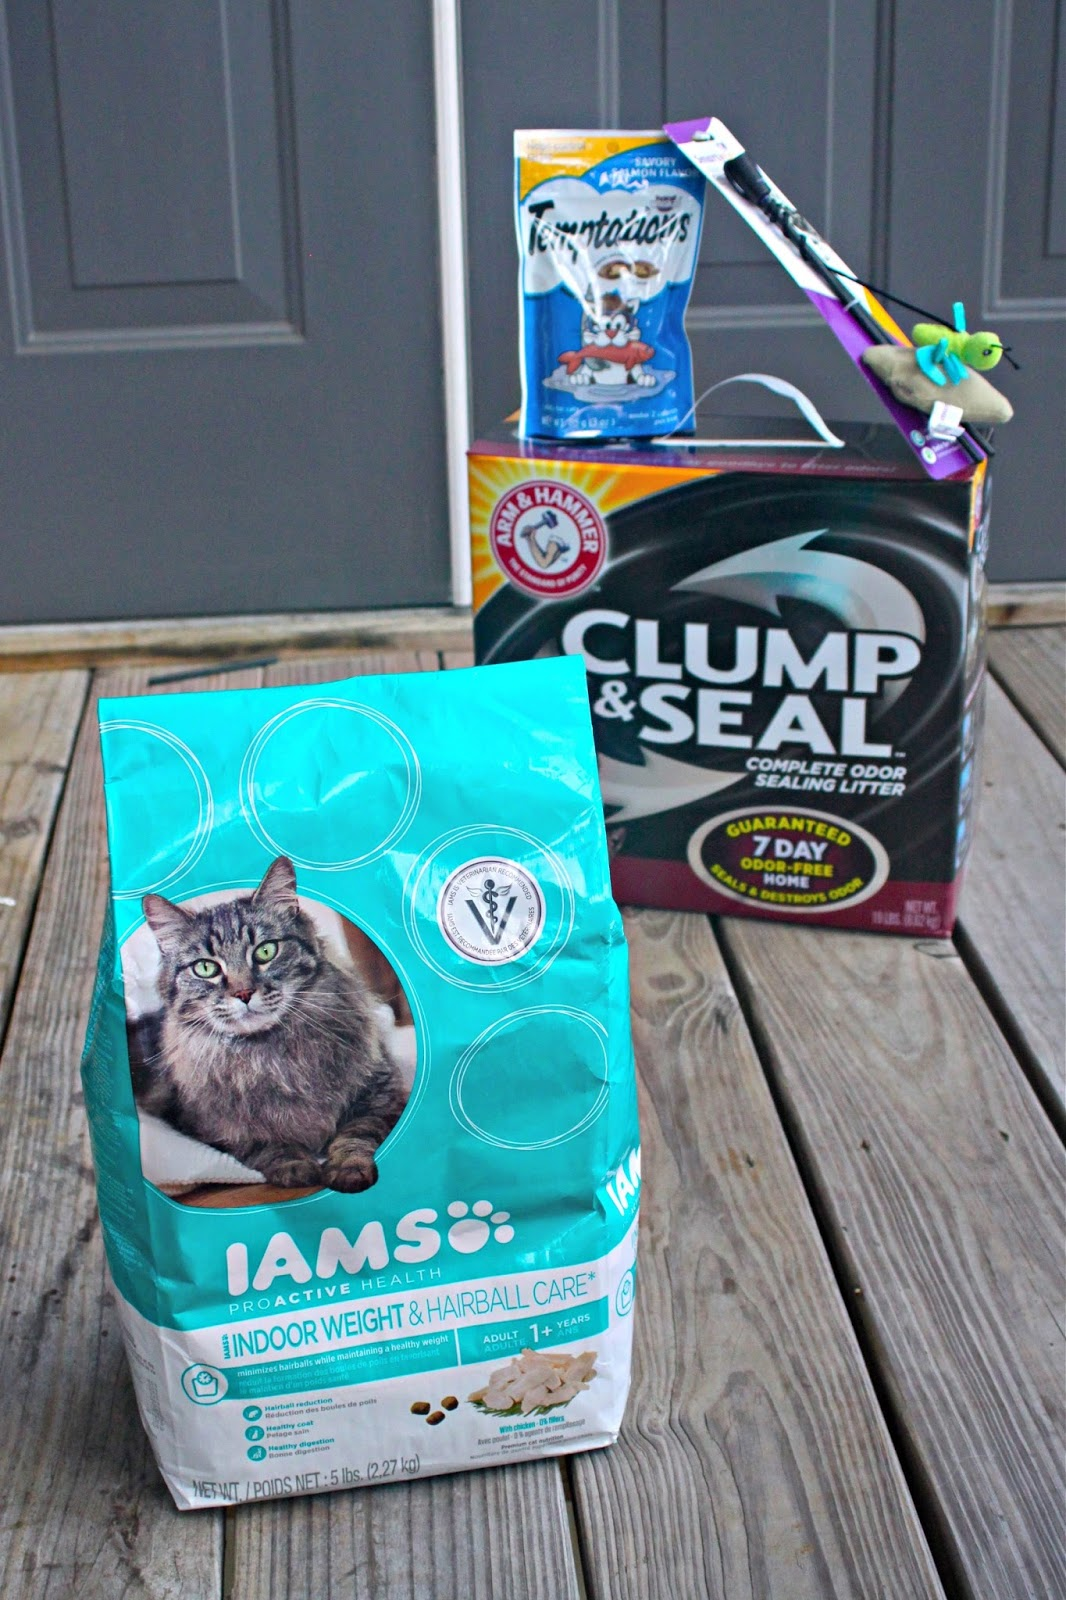 Iams-Target-One-Stop-Pet-Shop-Purchases